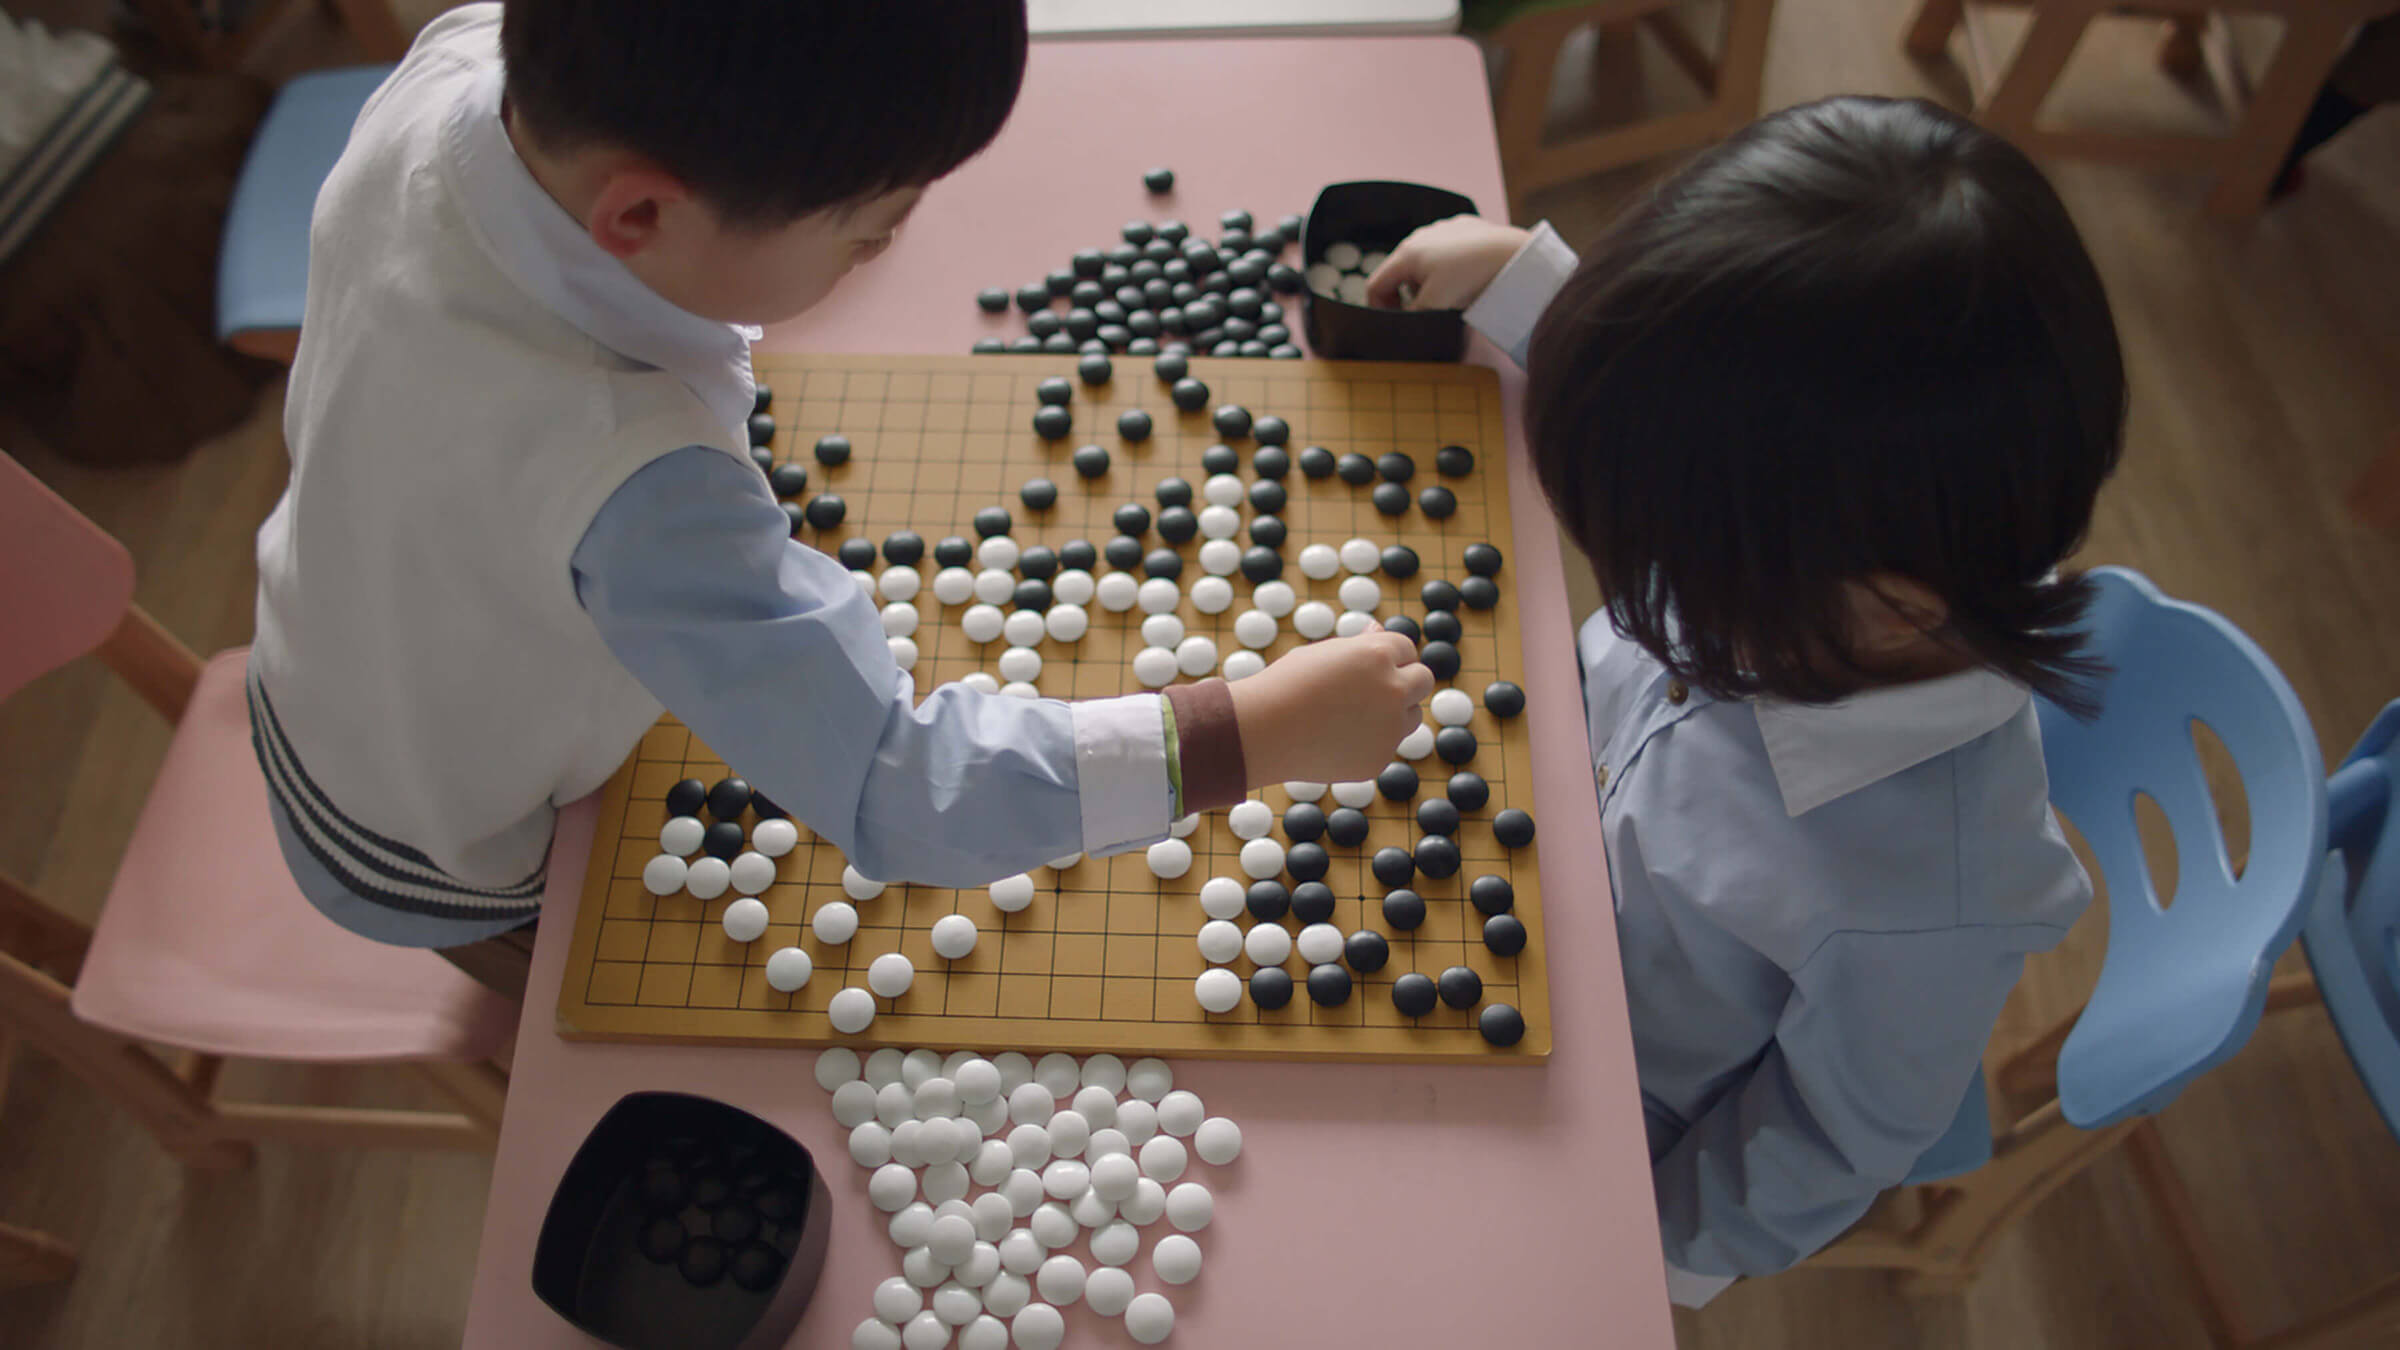 AlphaGo, the human Go slayer, has just been demolished by new AI